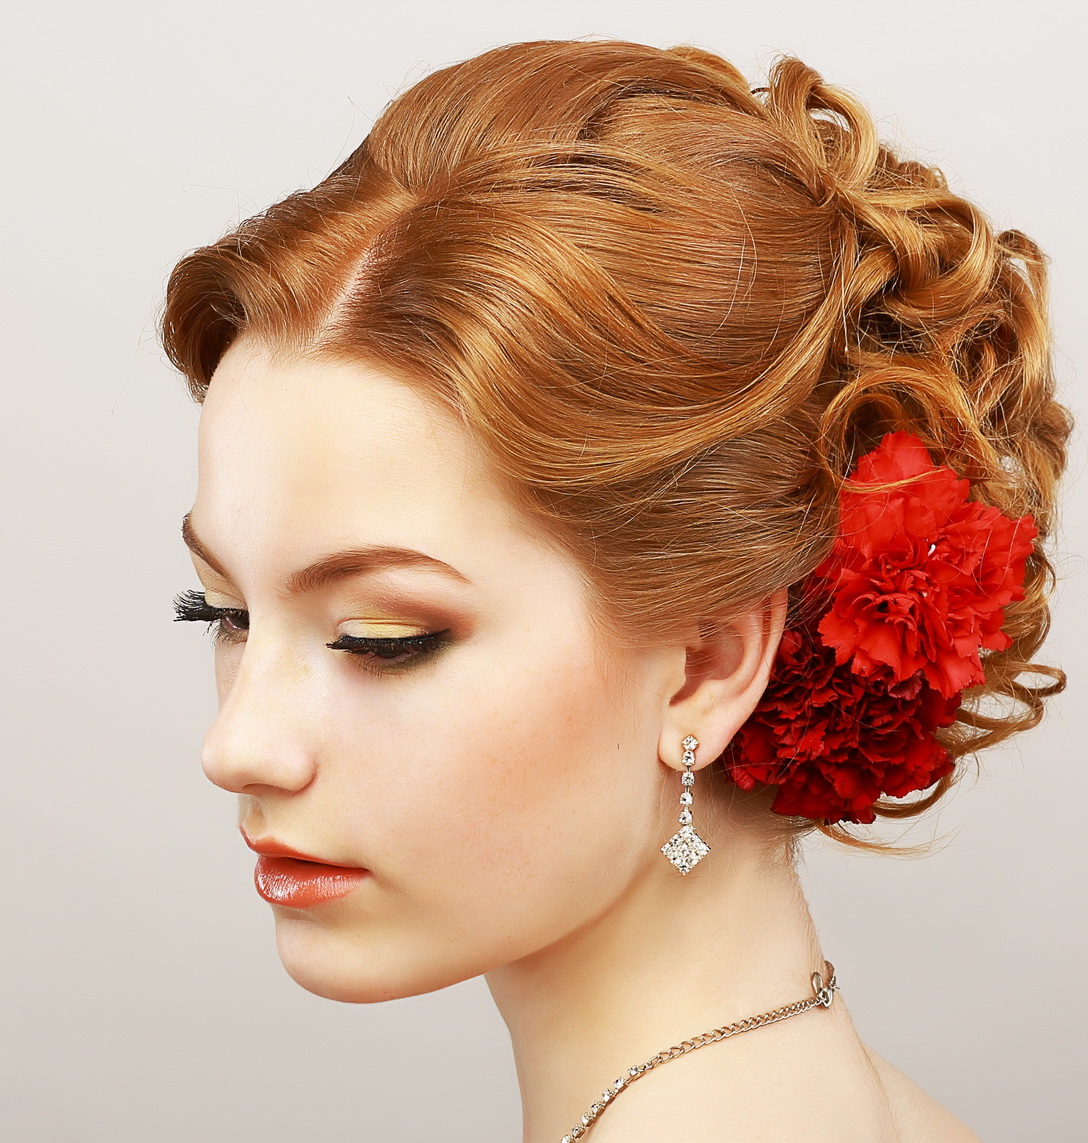 16 Easy Prom Hairstyles For Short And Medium Length Hair With Prom Short Hairstyles (View 2 of 25)